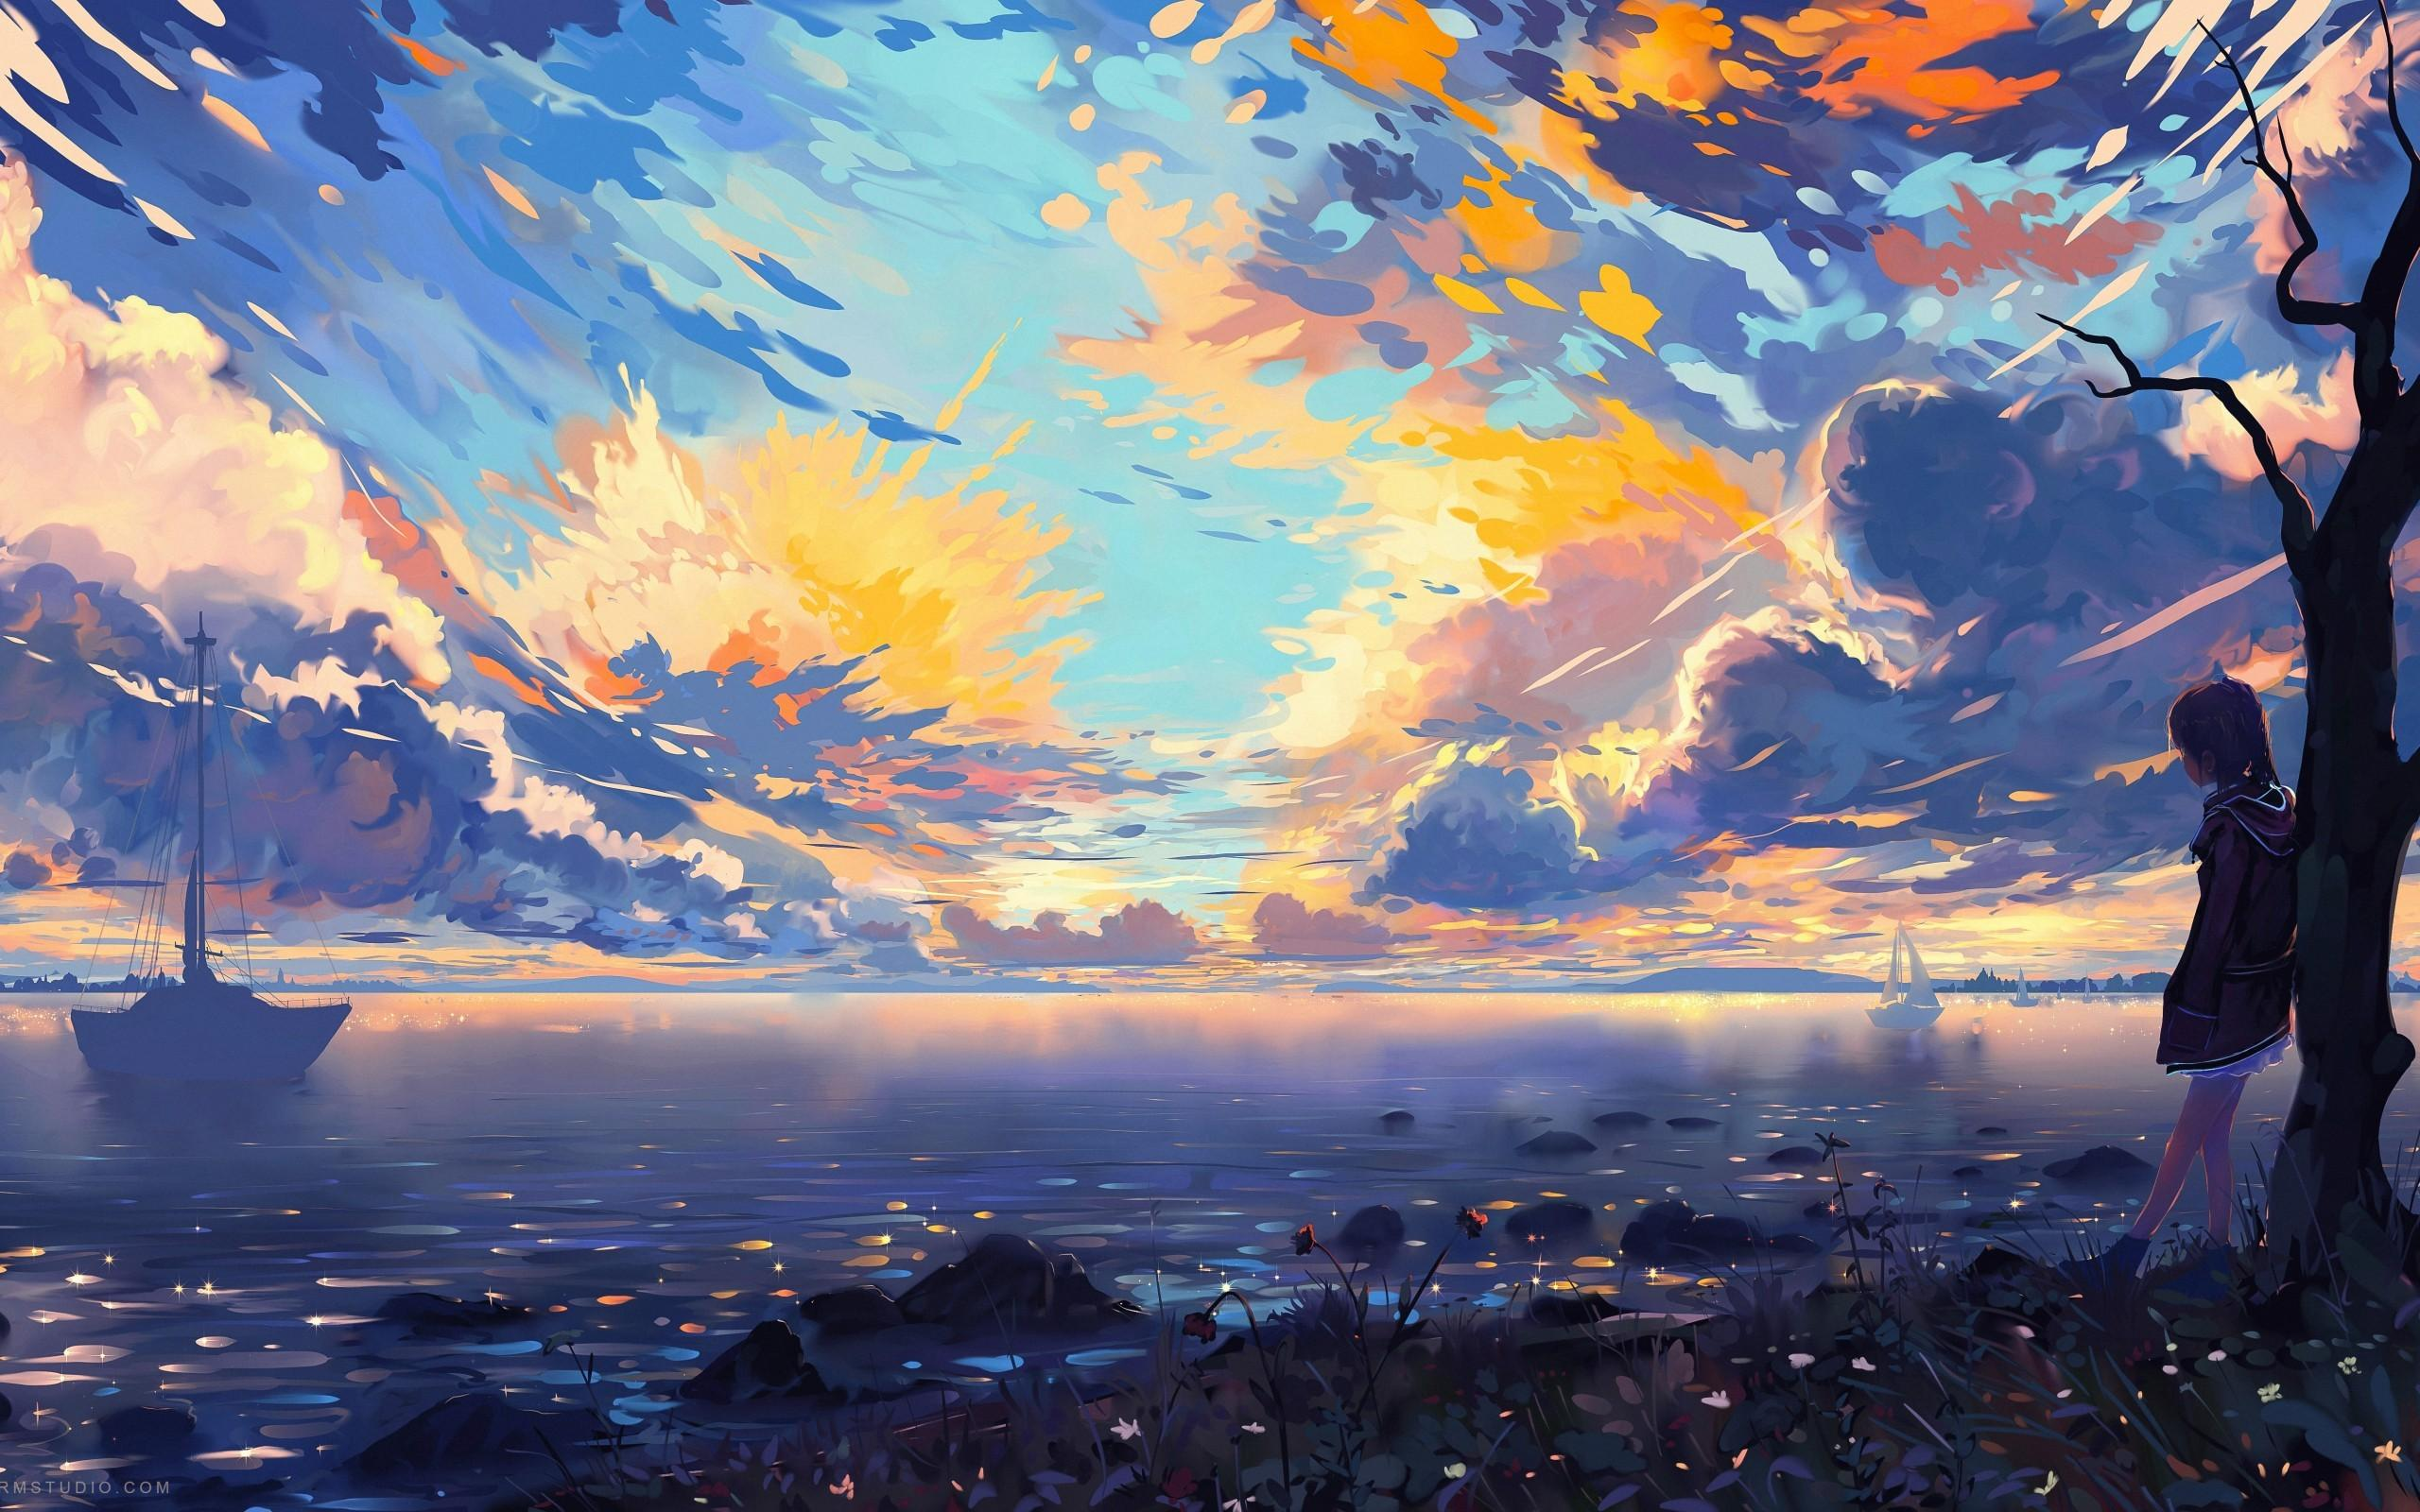 Download 2560x1600 Anime Landscape, Sea, Ships, Colorful, Clouds